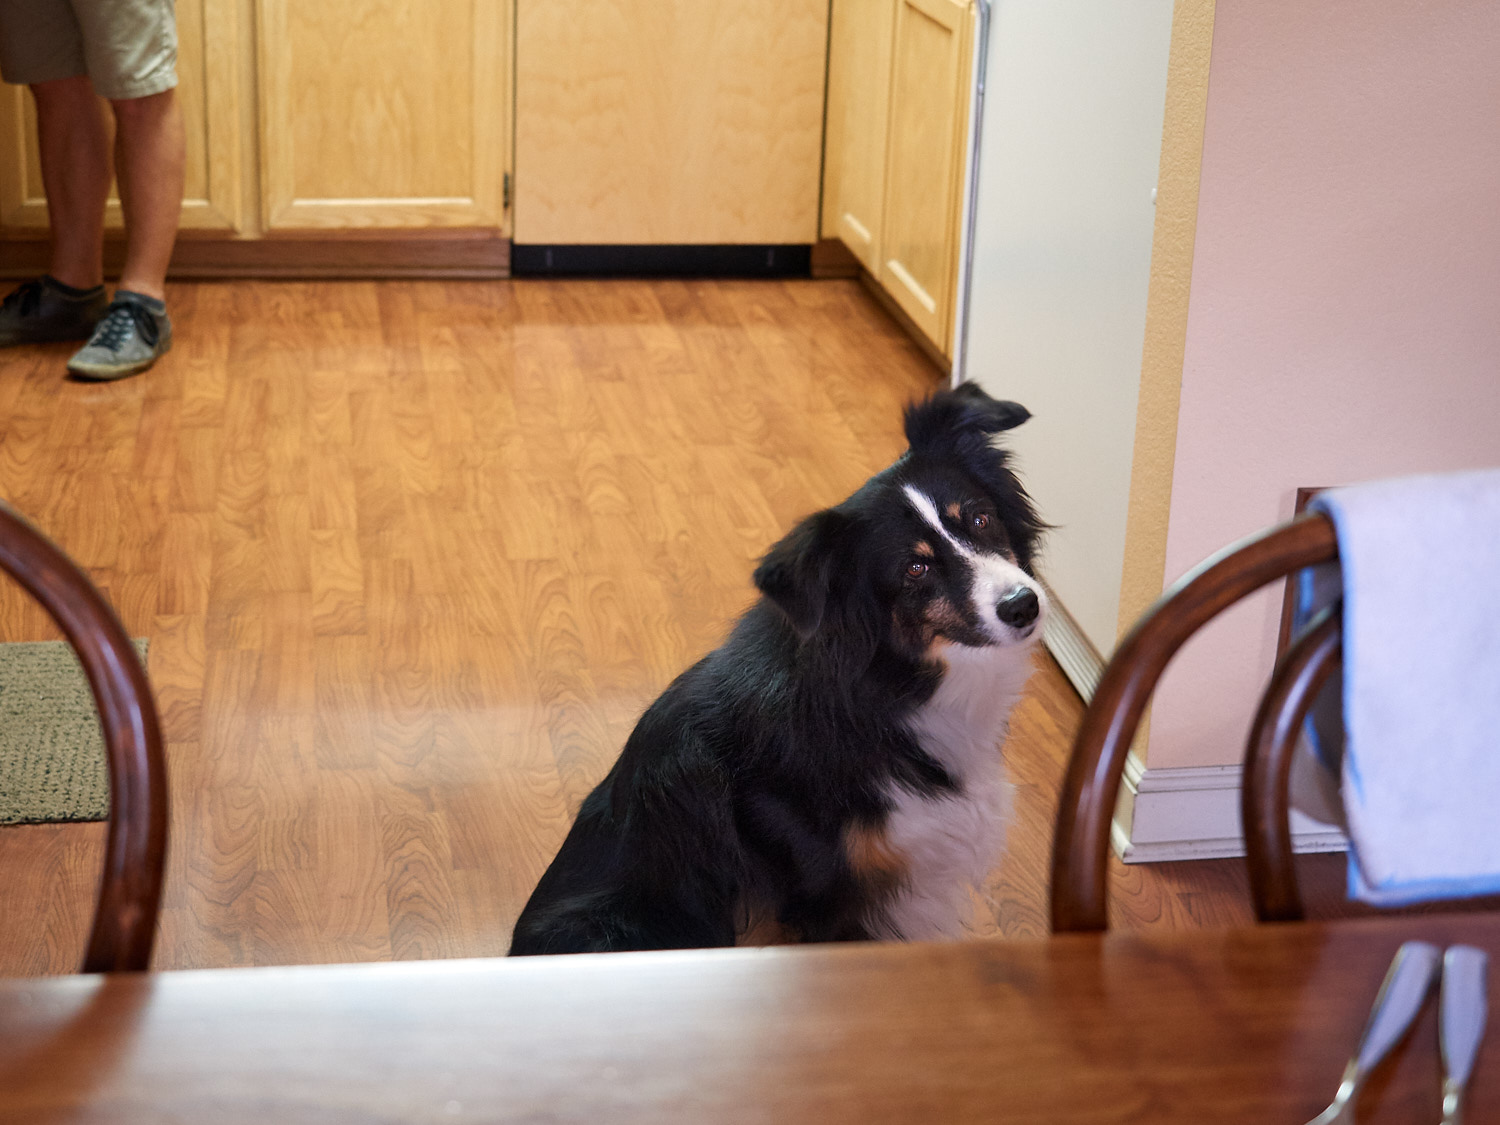 Riley waited by the table to be sure he could see the Fritatta when it arrived.